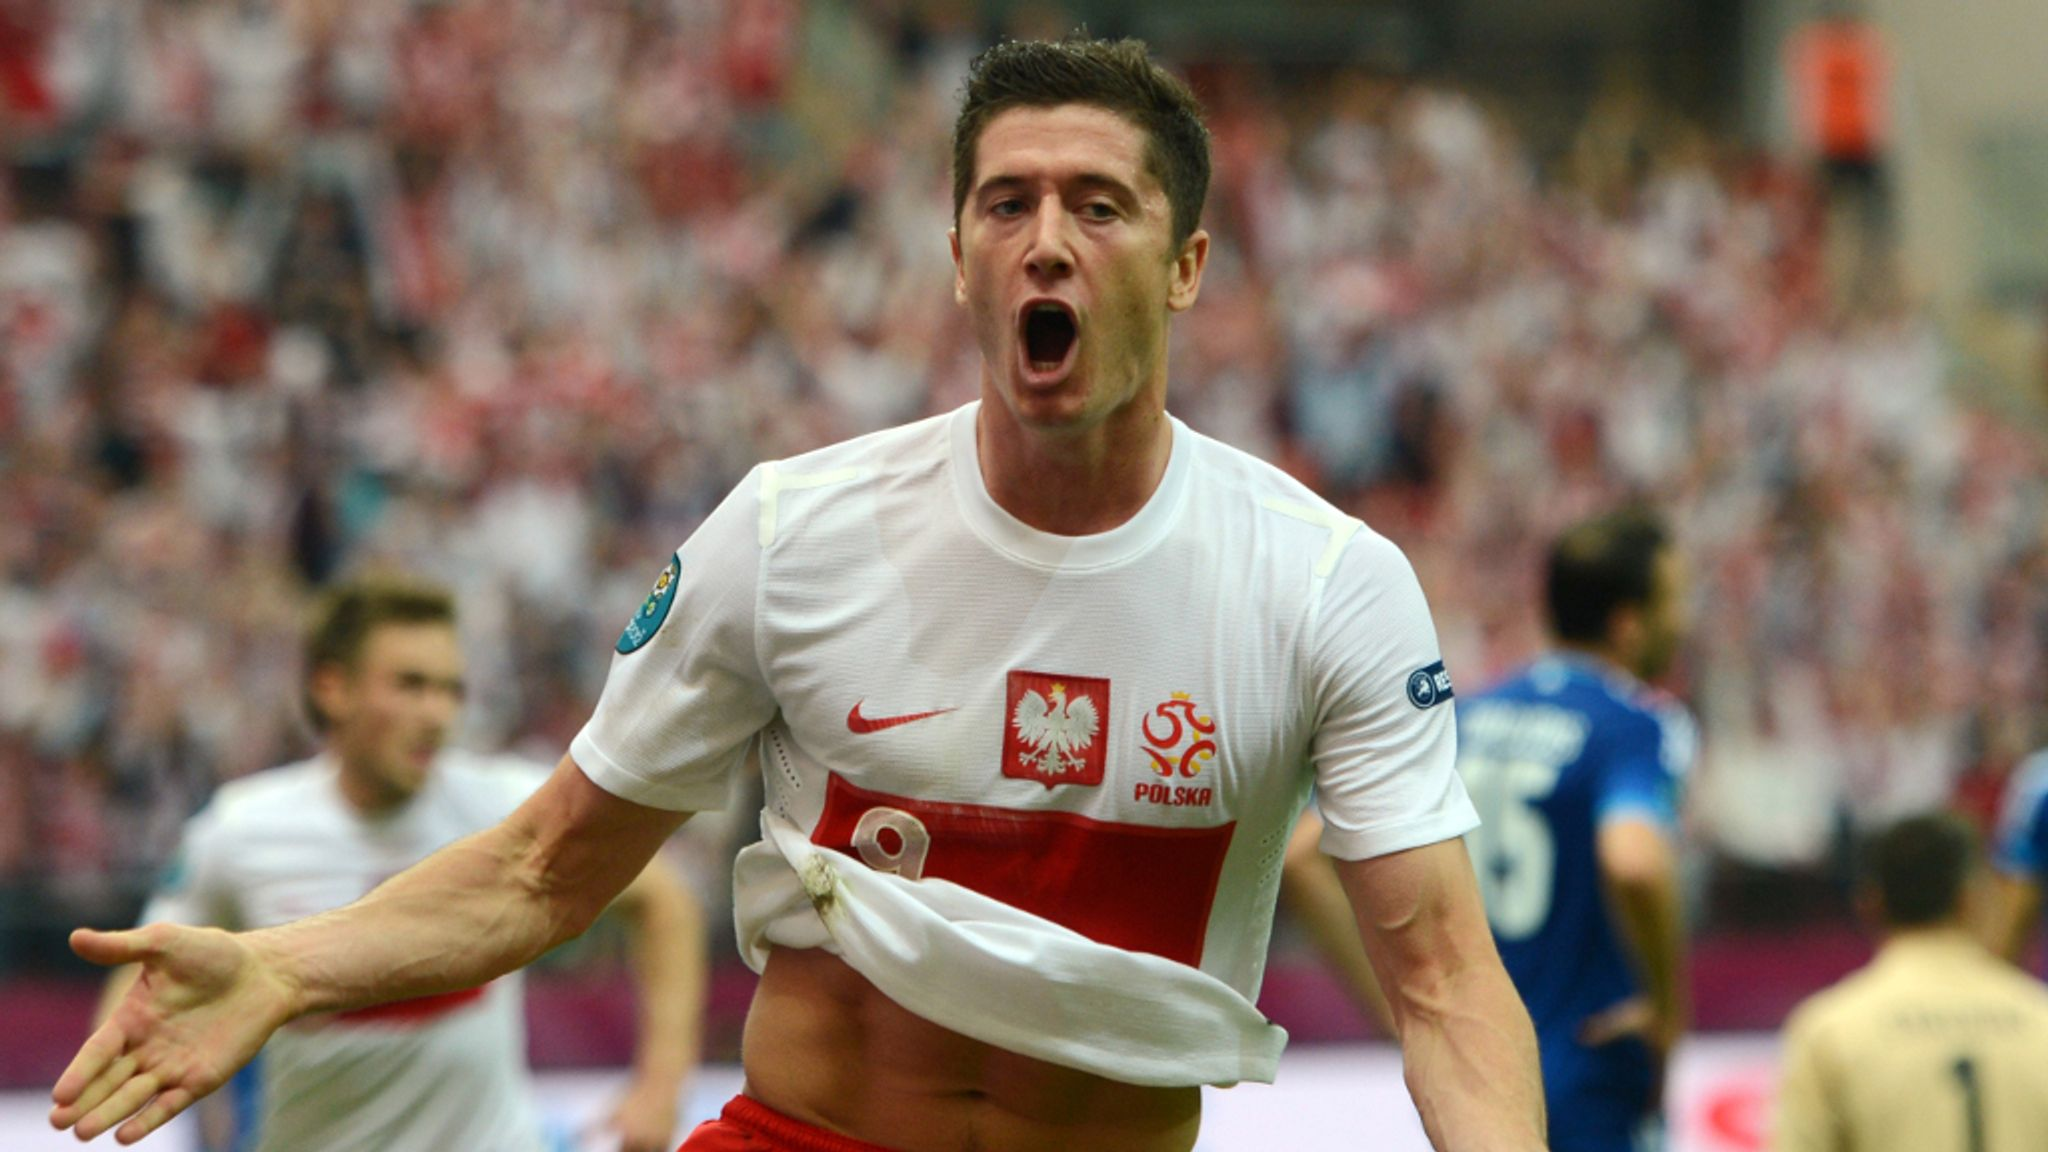 Czech republic v poland betting preview why doesnt gyro bet on even numbers when playing roulette